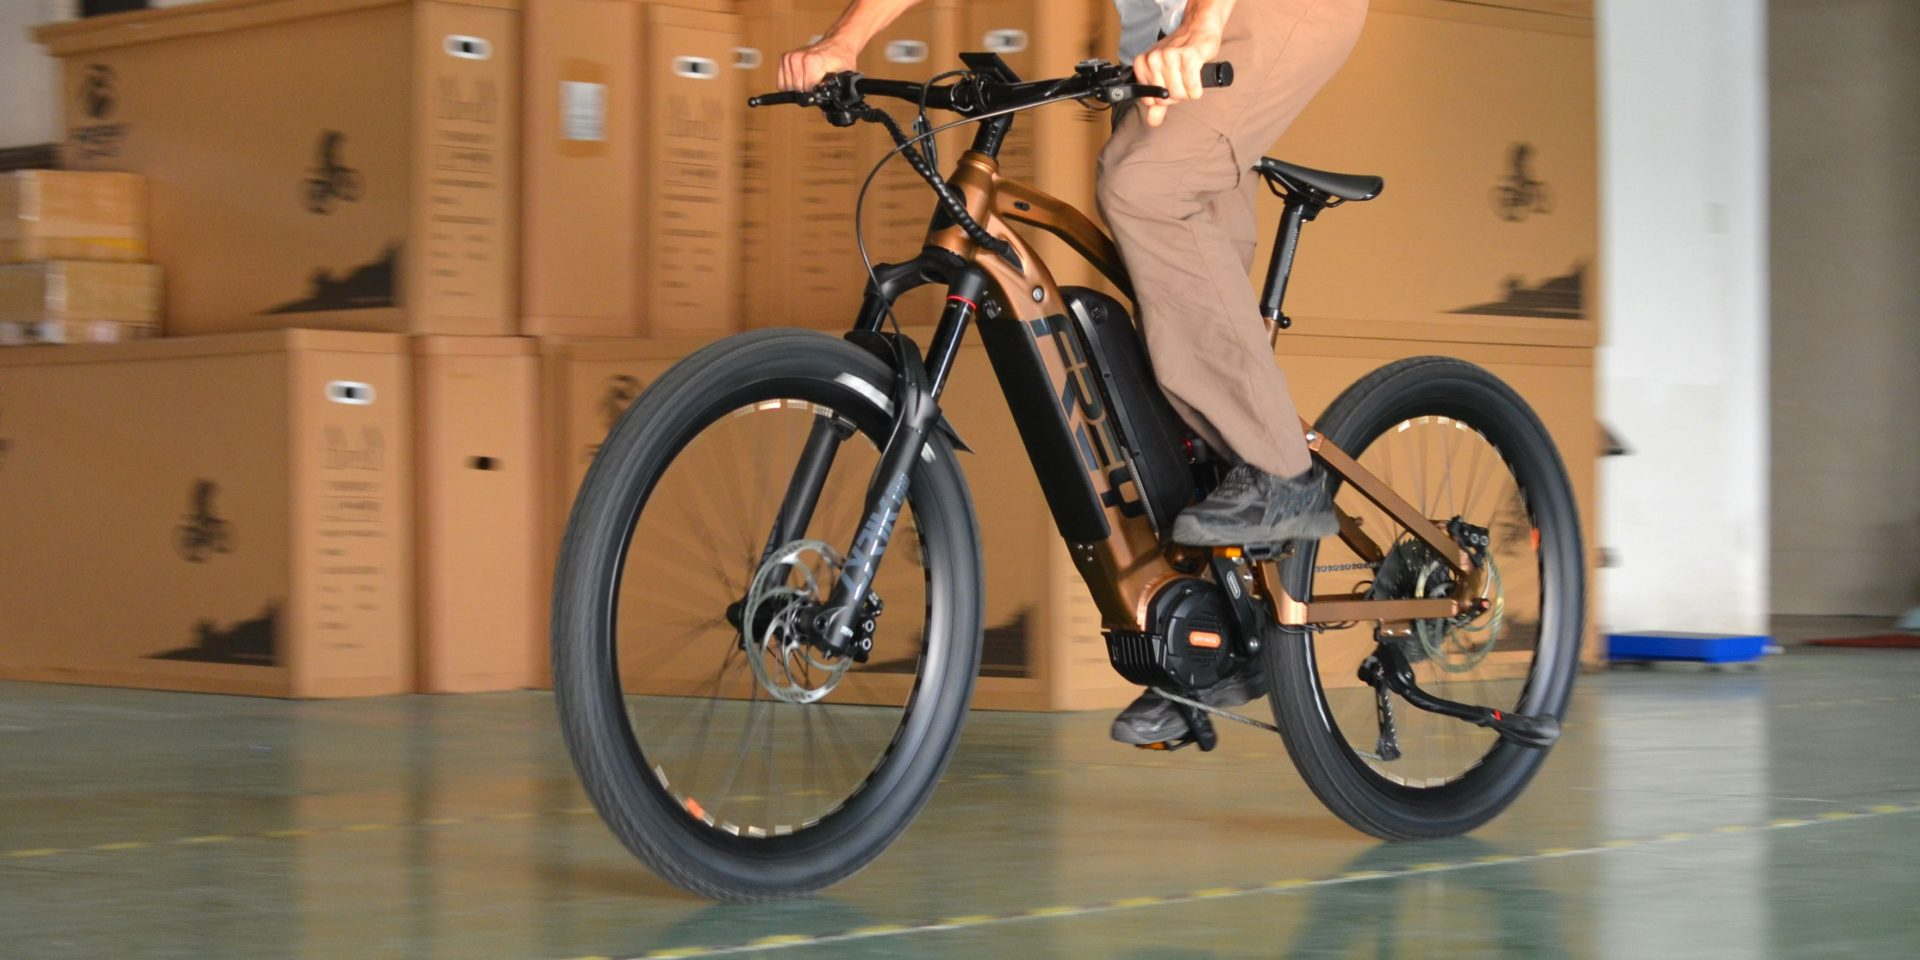 Frey Bike unveiled its two high-power and high-speed e-bikes